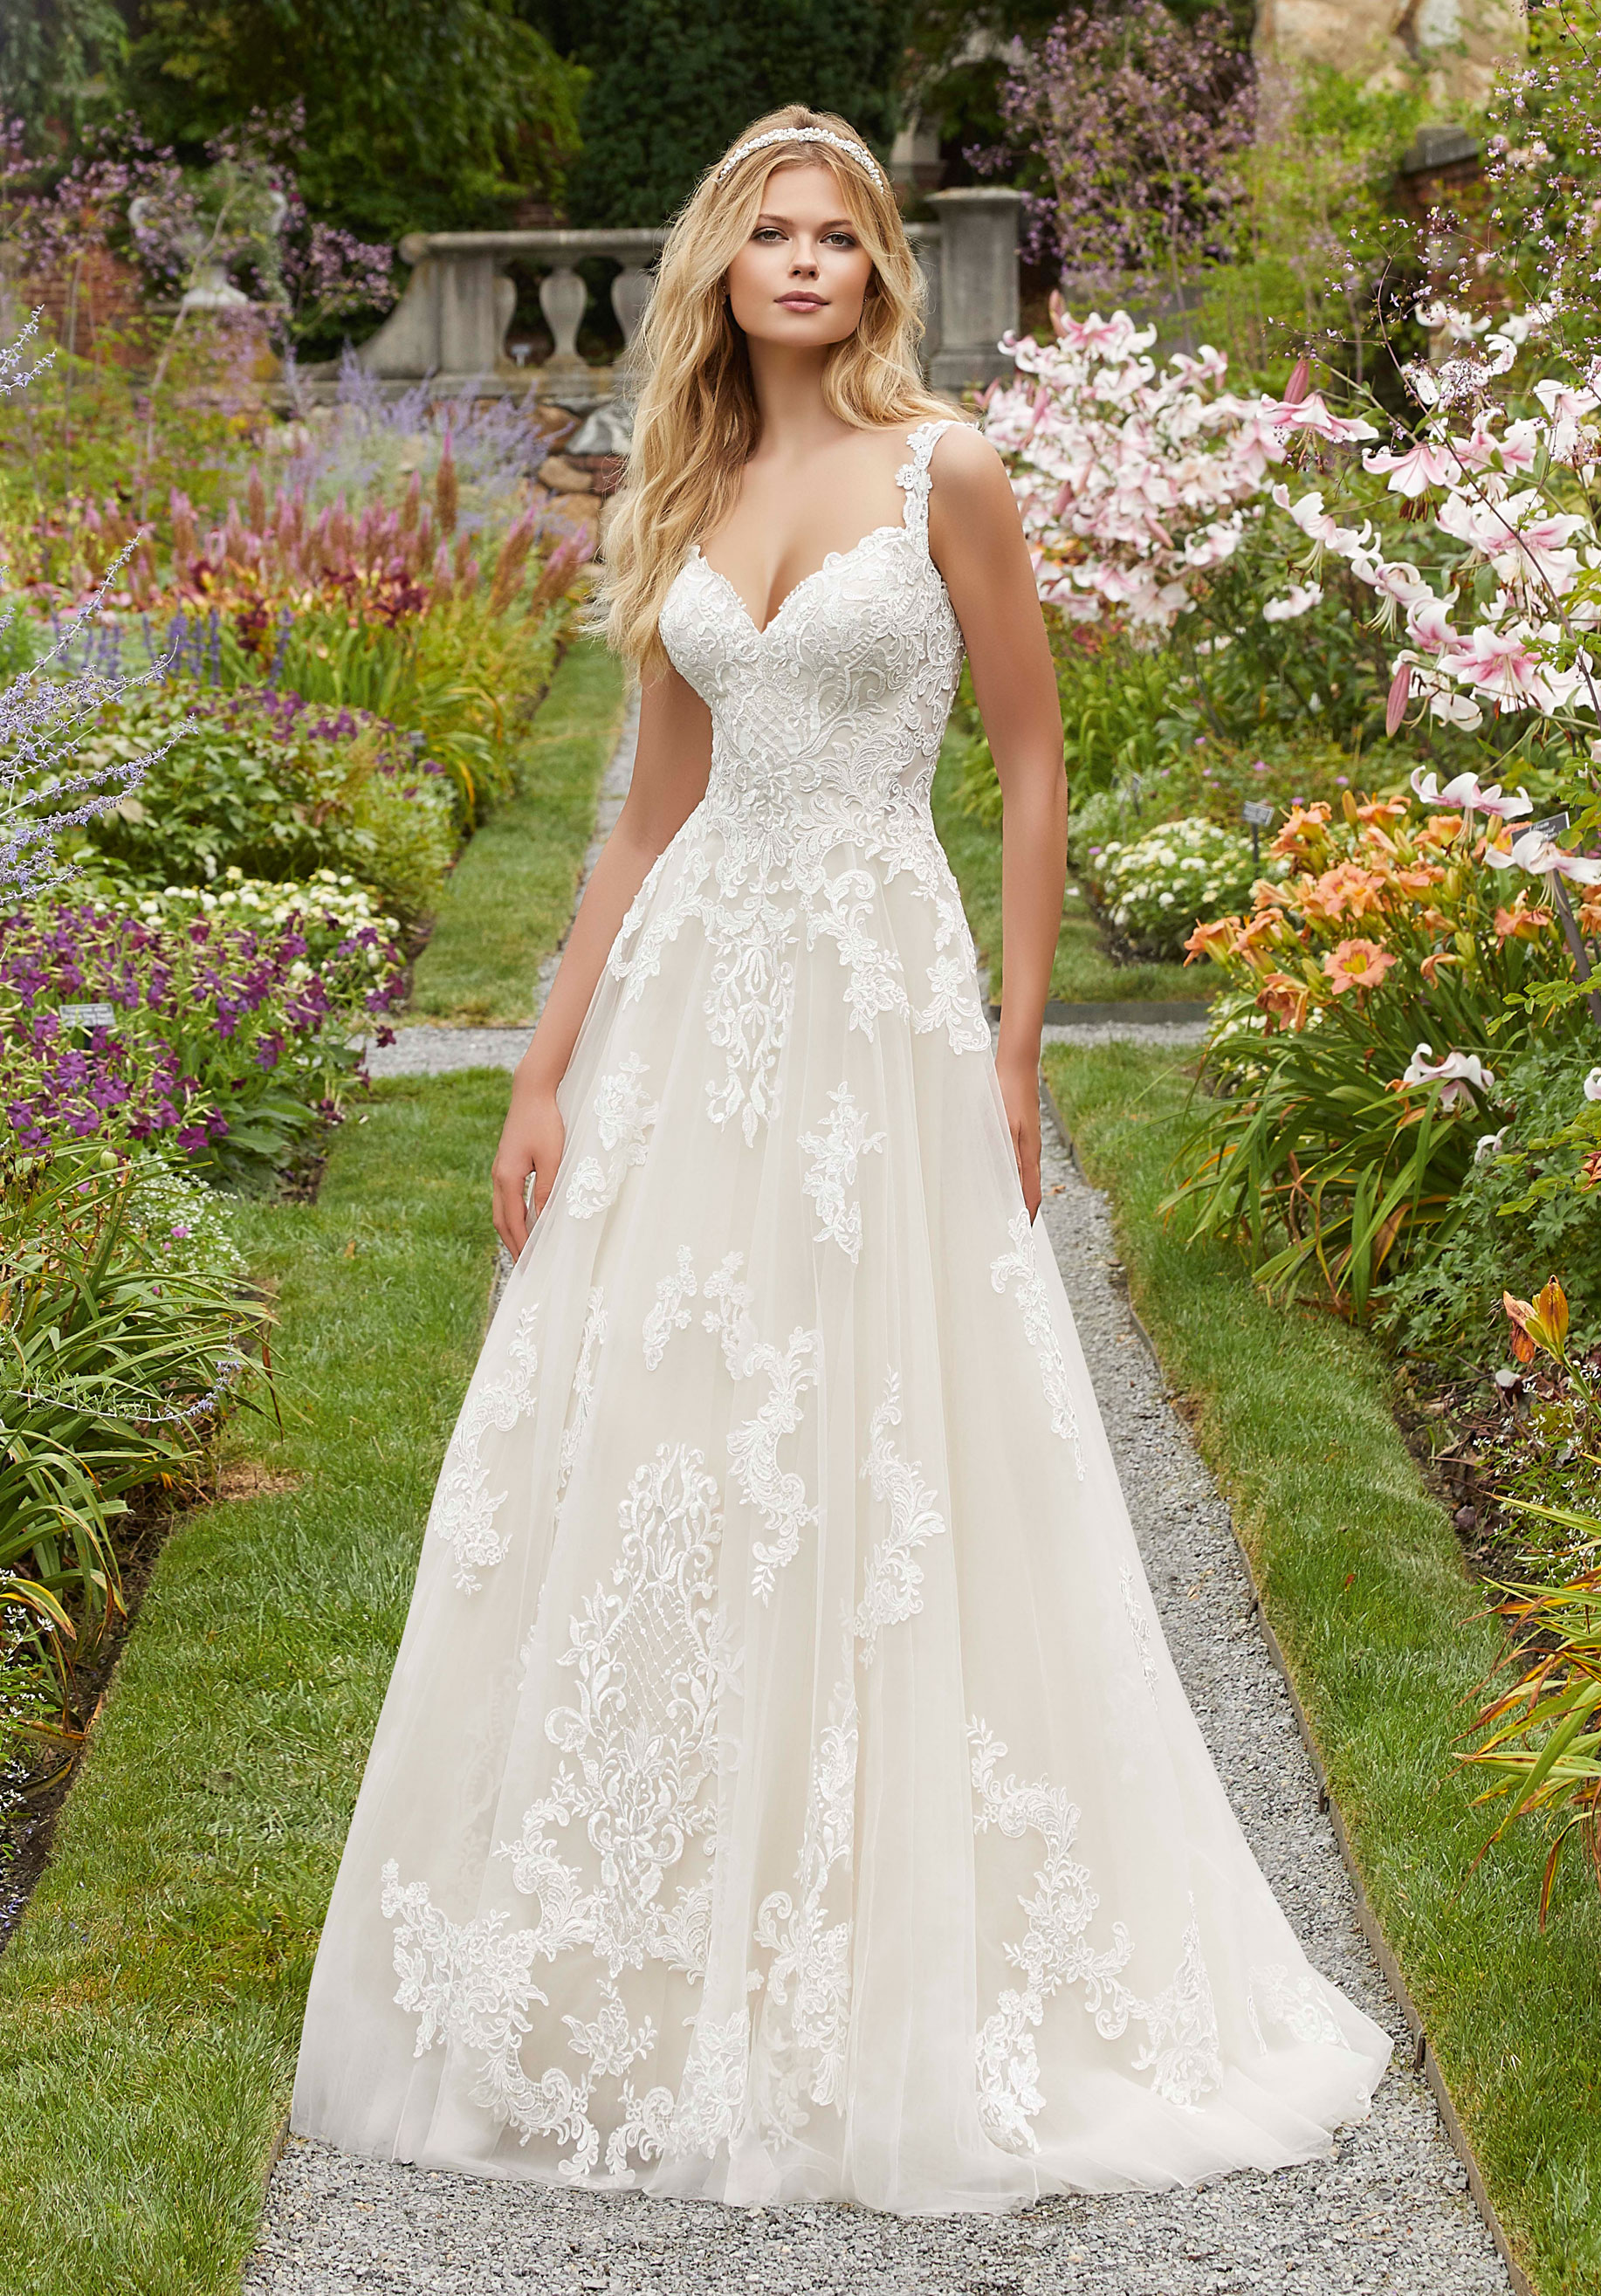 Mori Lee Wedding Dresses at House of Brides